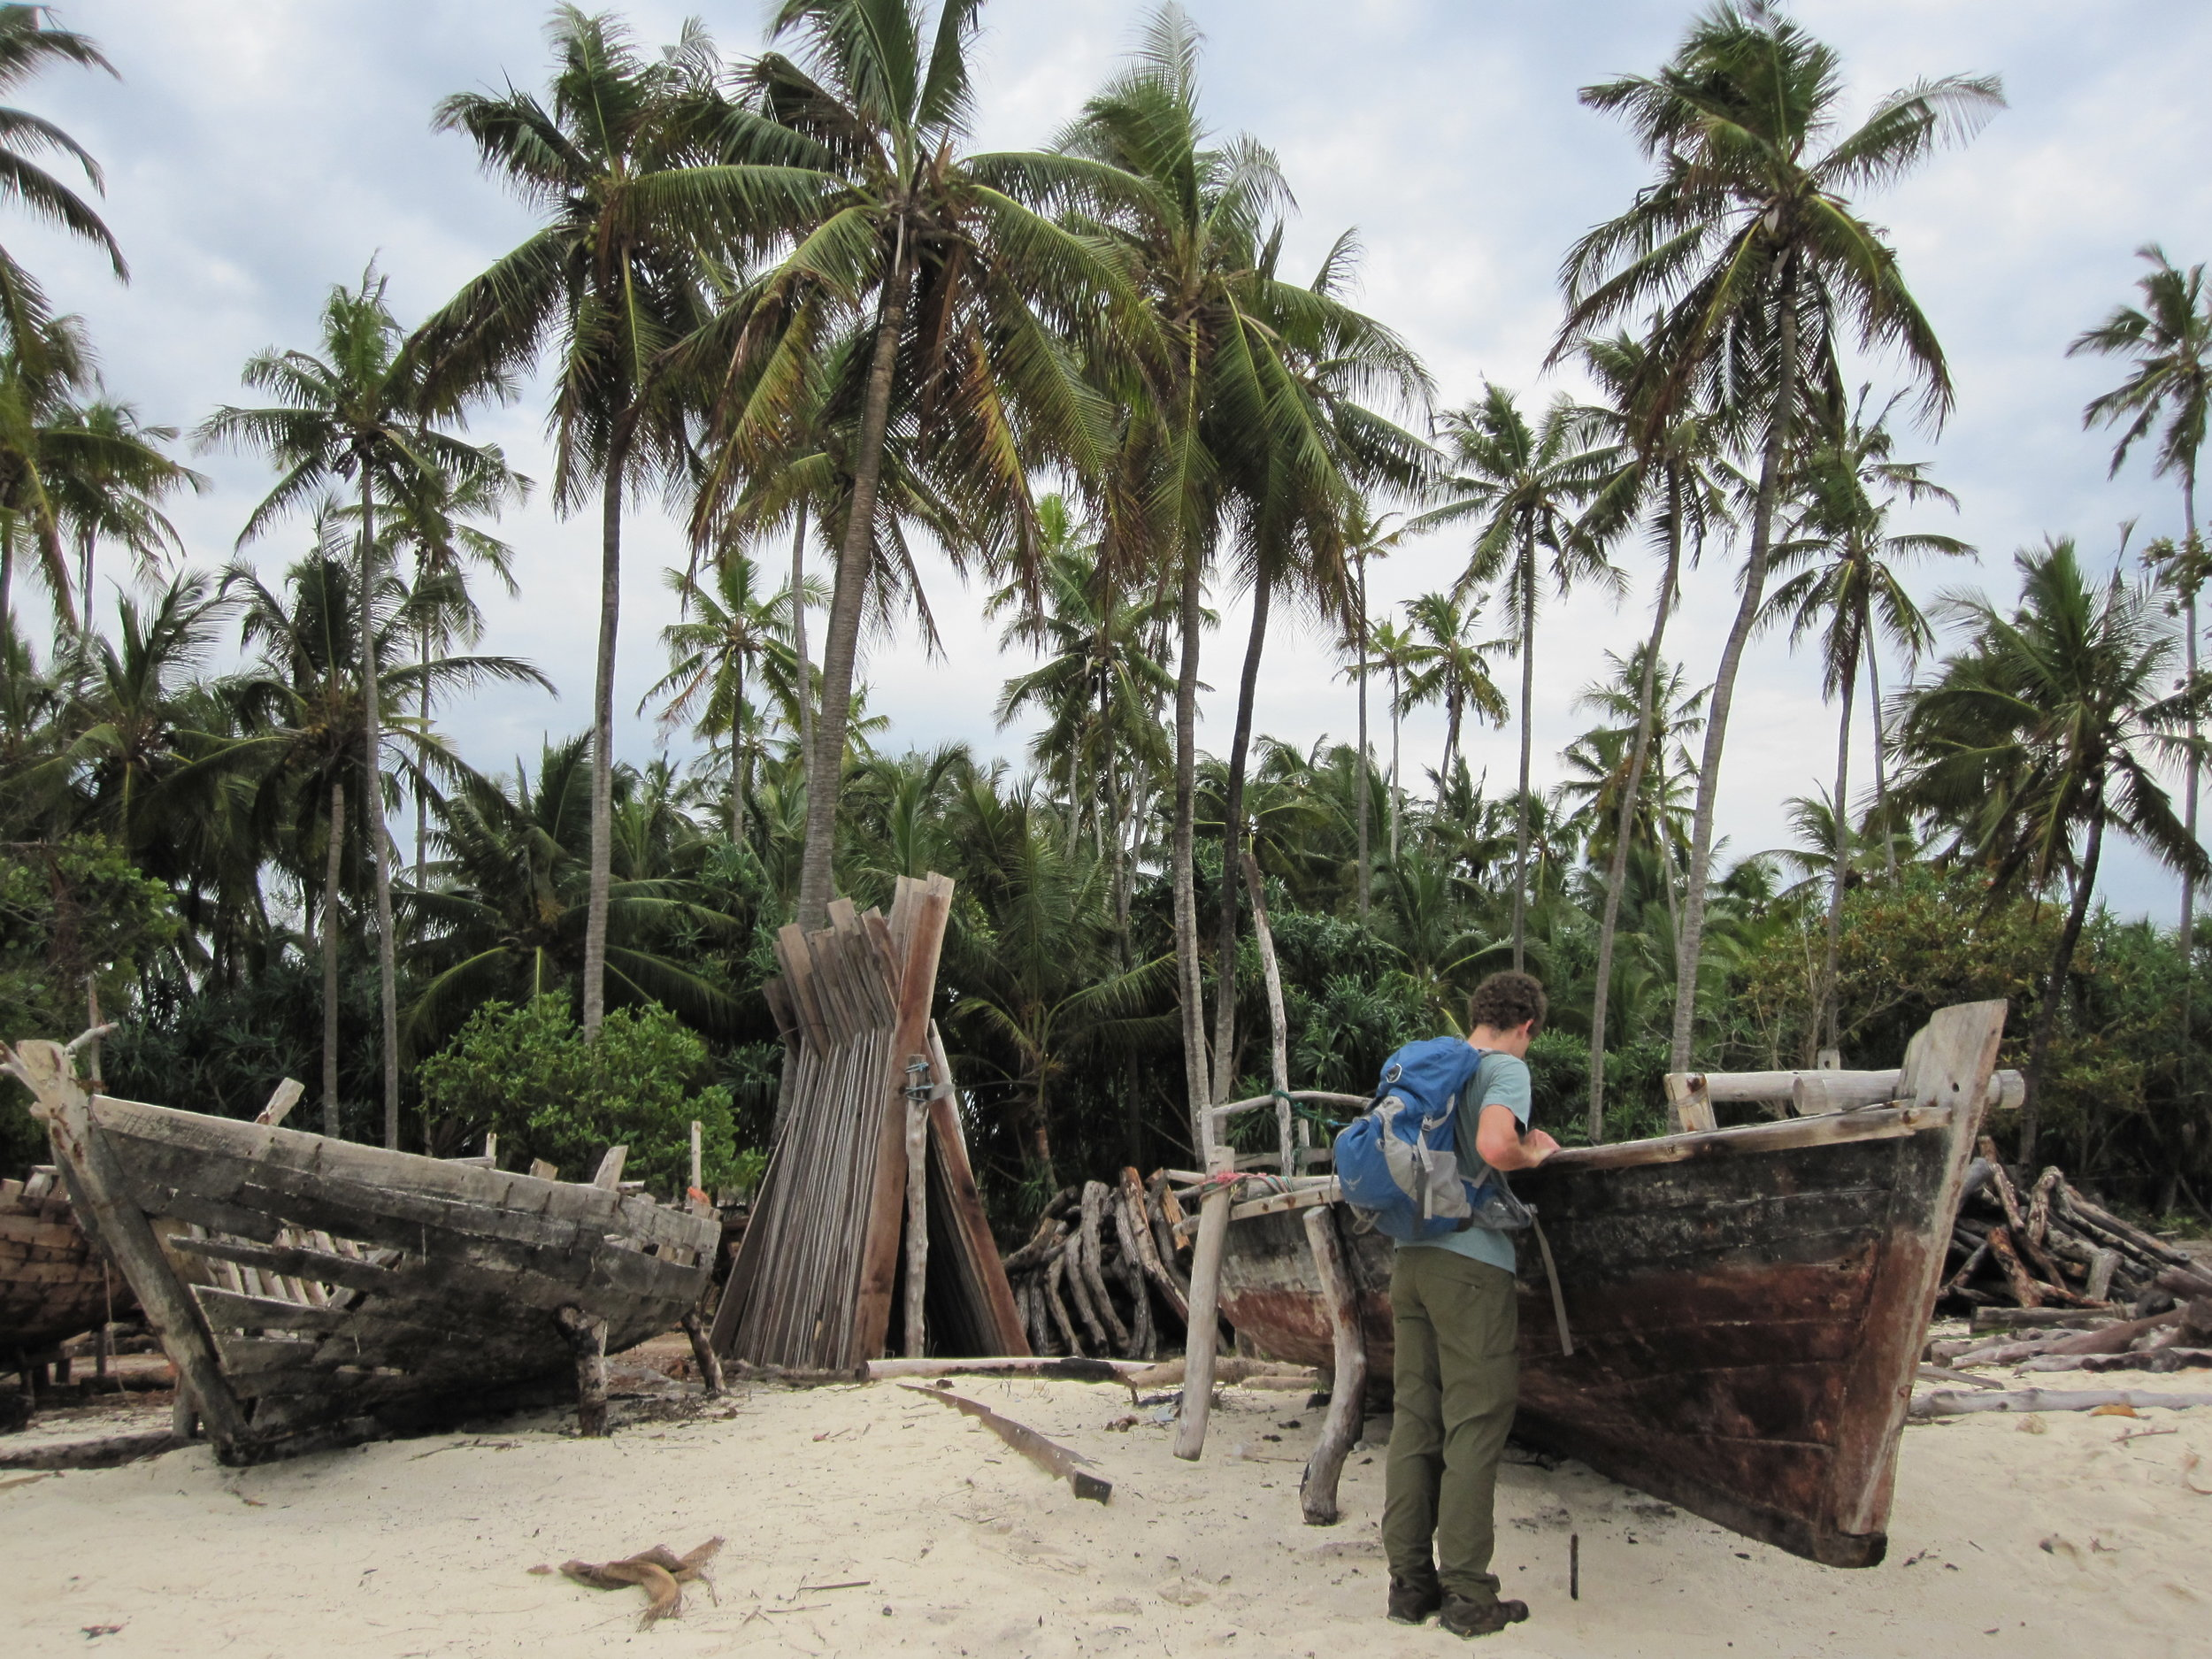 Looking at dhows being built in Zanzibar